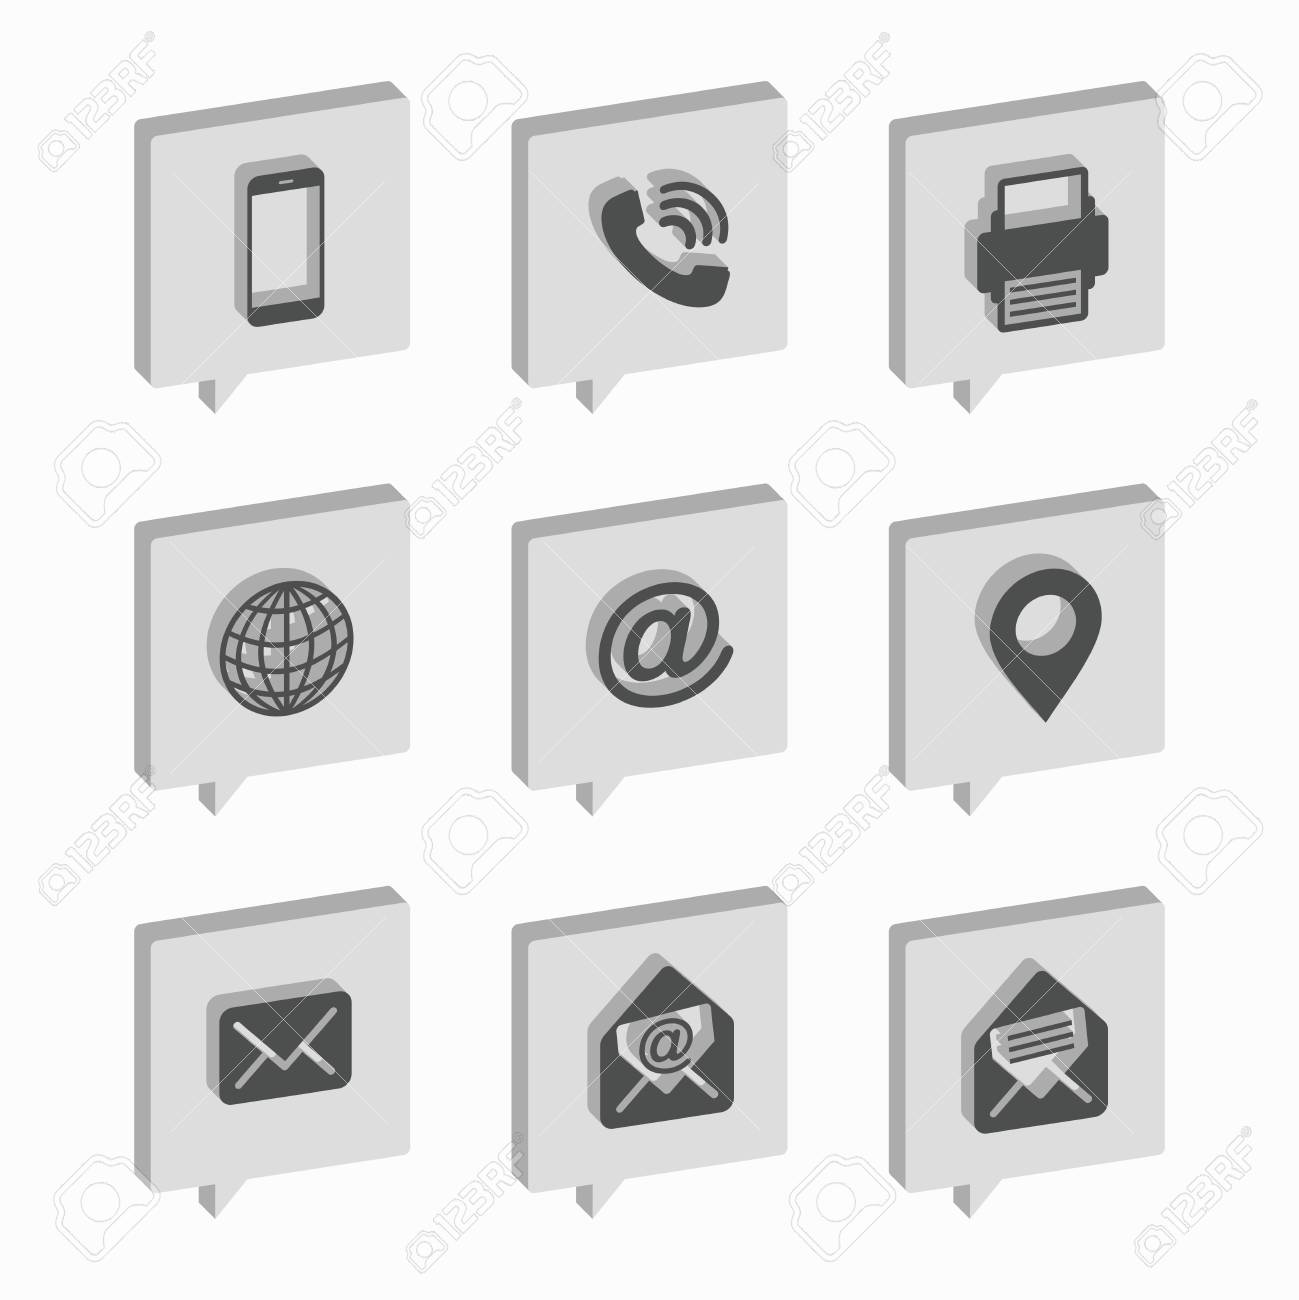 Isometric bubbles business card icon set web icons royalty free business card icon set web icons stock vector 90577494 reheart Images